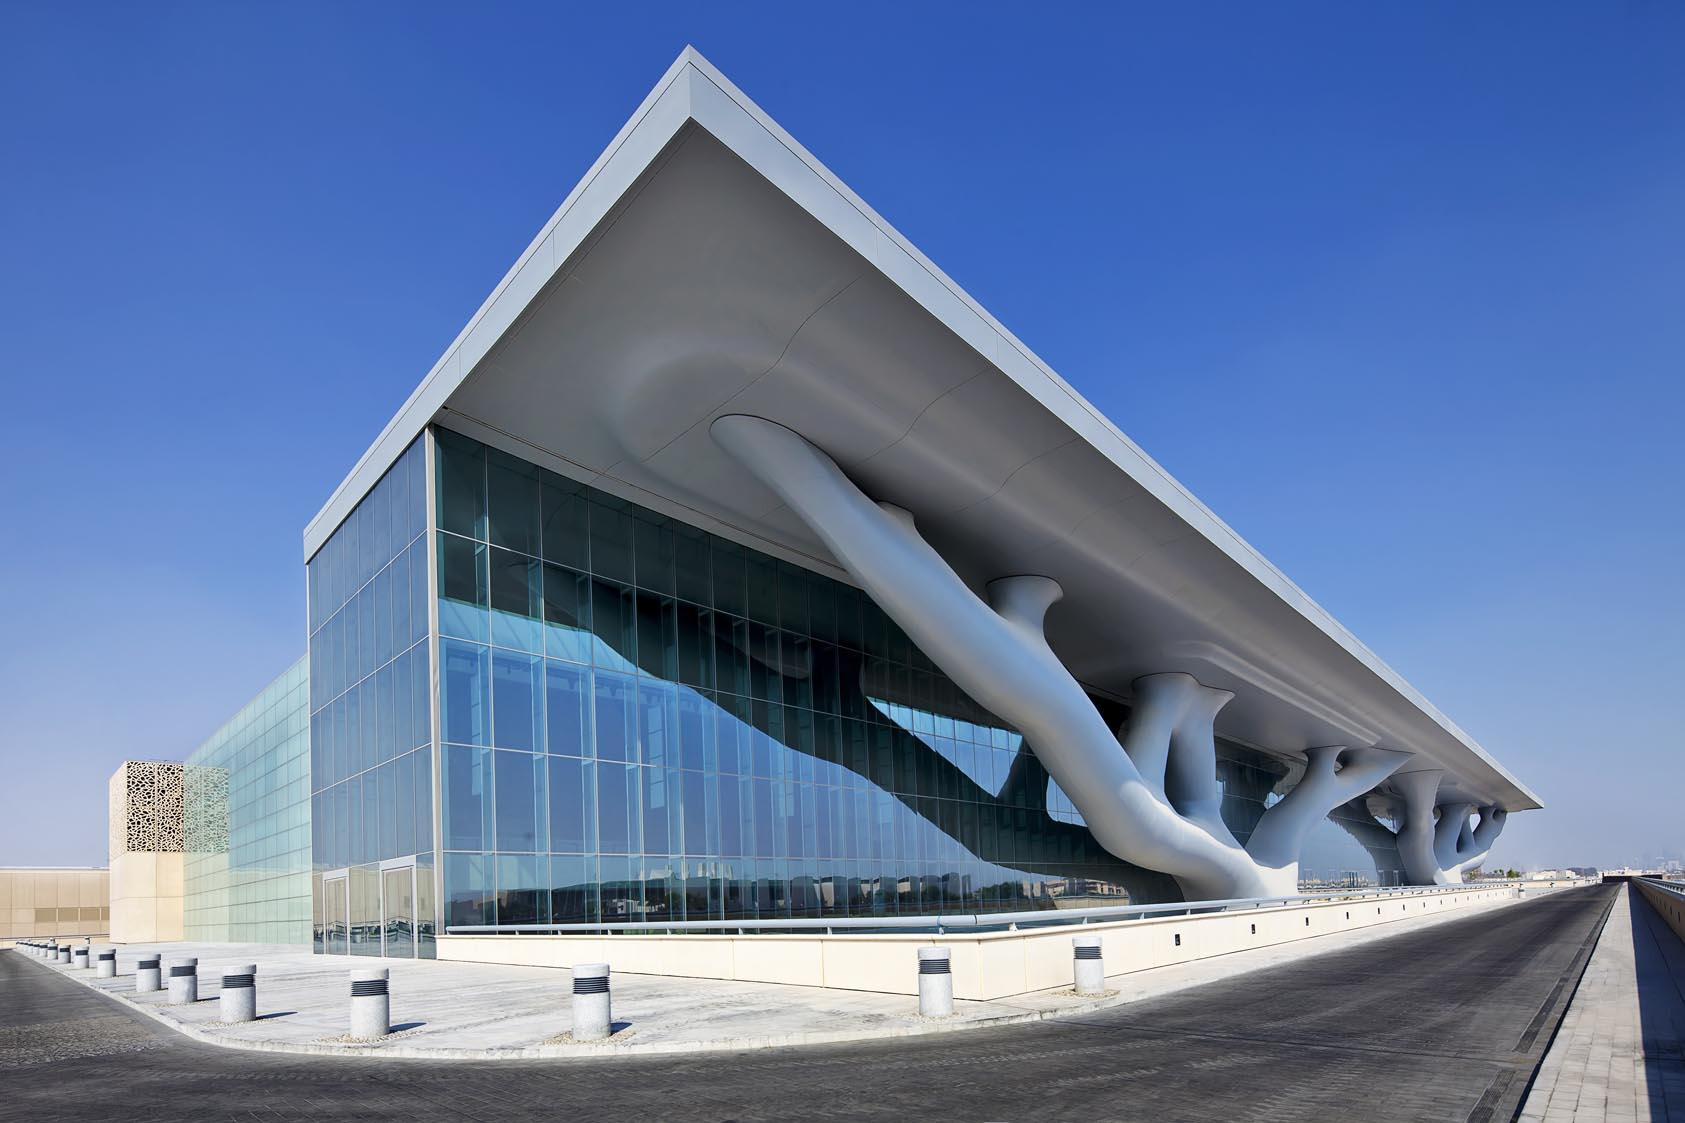 QNCC - Qatar National Concention Center